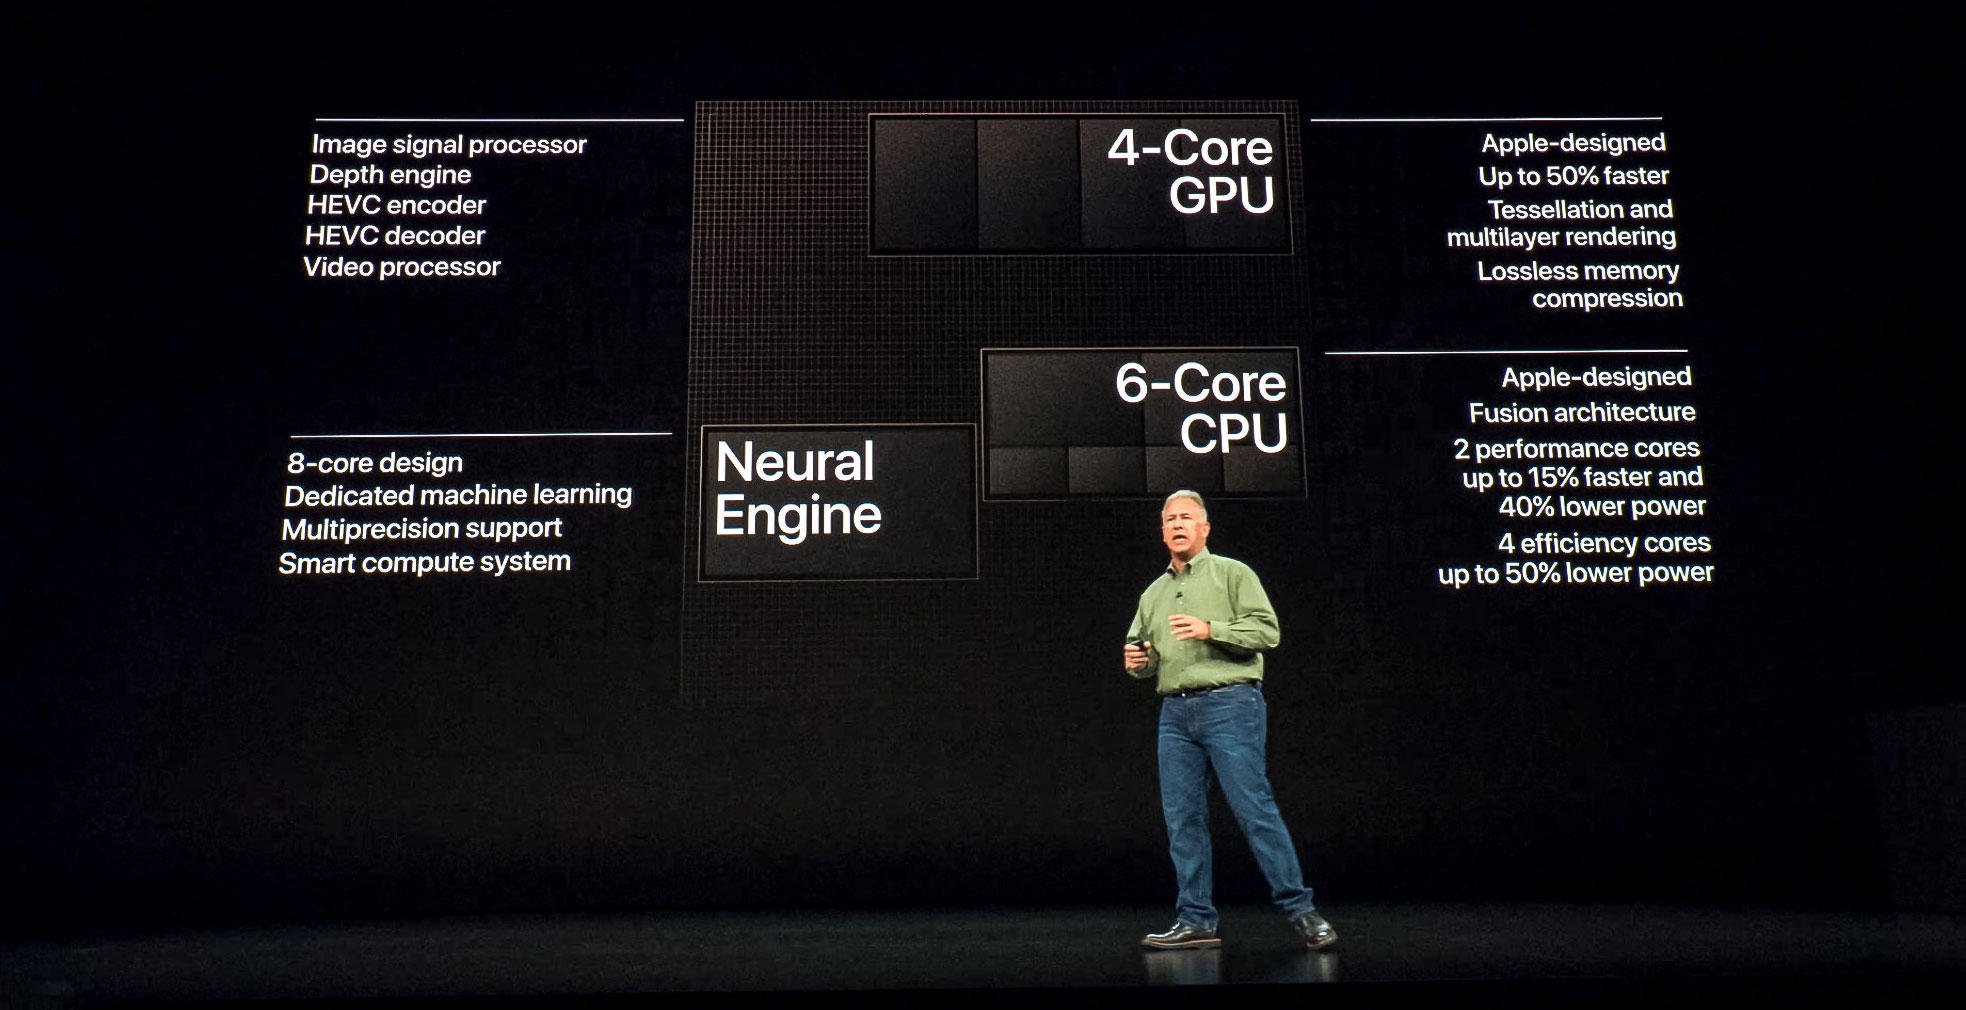 In this photo composite, Apple marketing chief Phil Schiller touts some of the features in the A12 Bionic processor that powers the iPhone XS, XS Max and XR smartphones.